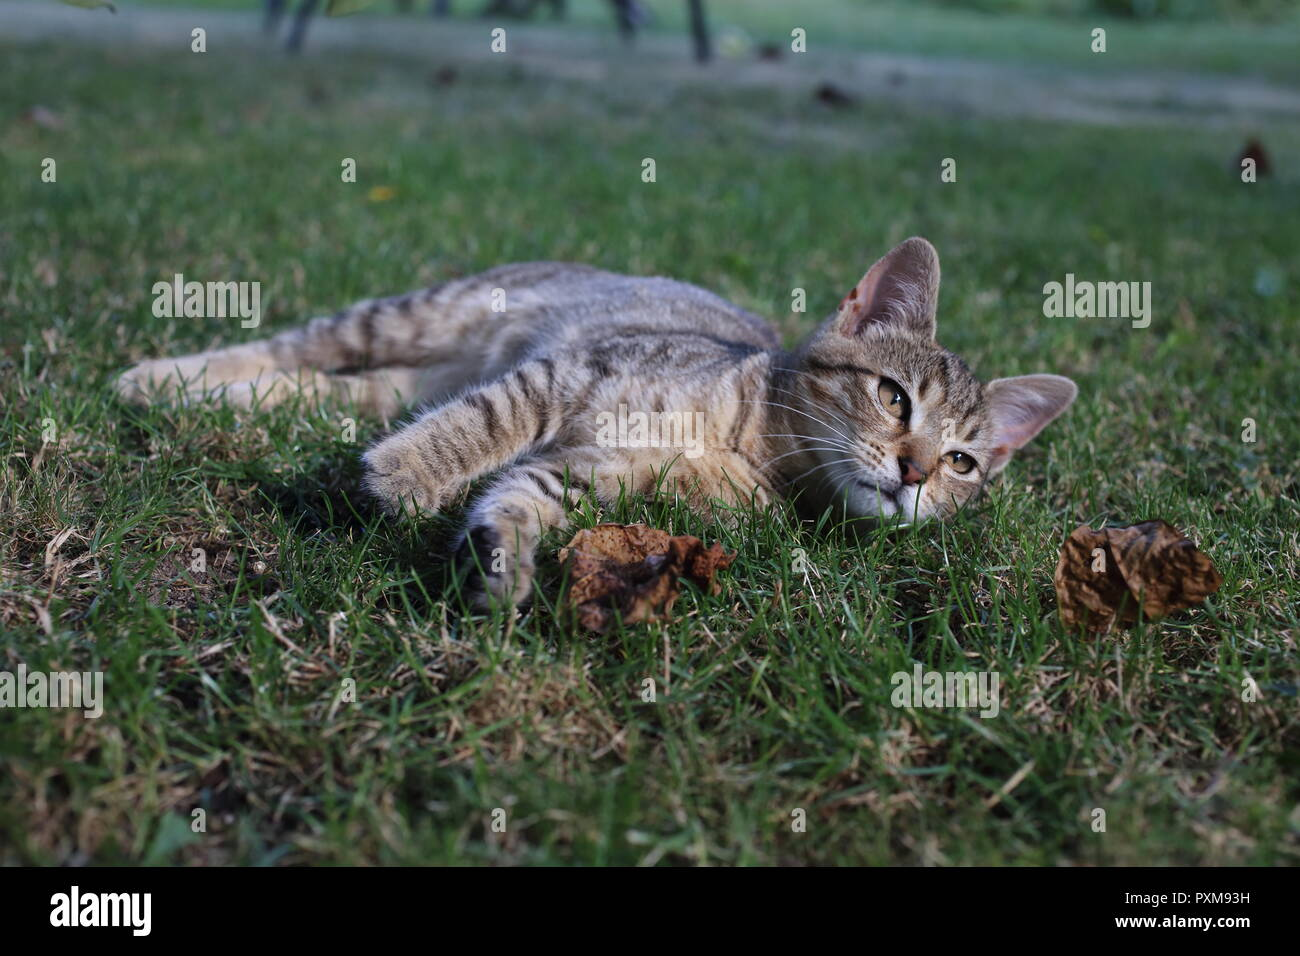 cute striped cat playing in the grass in the garden - Stock Image